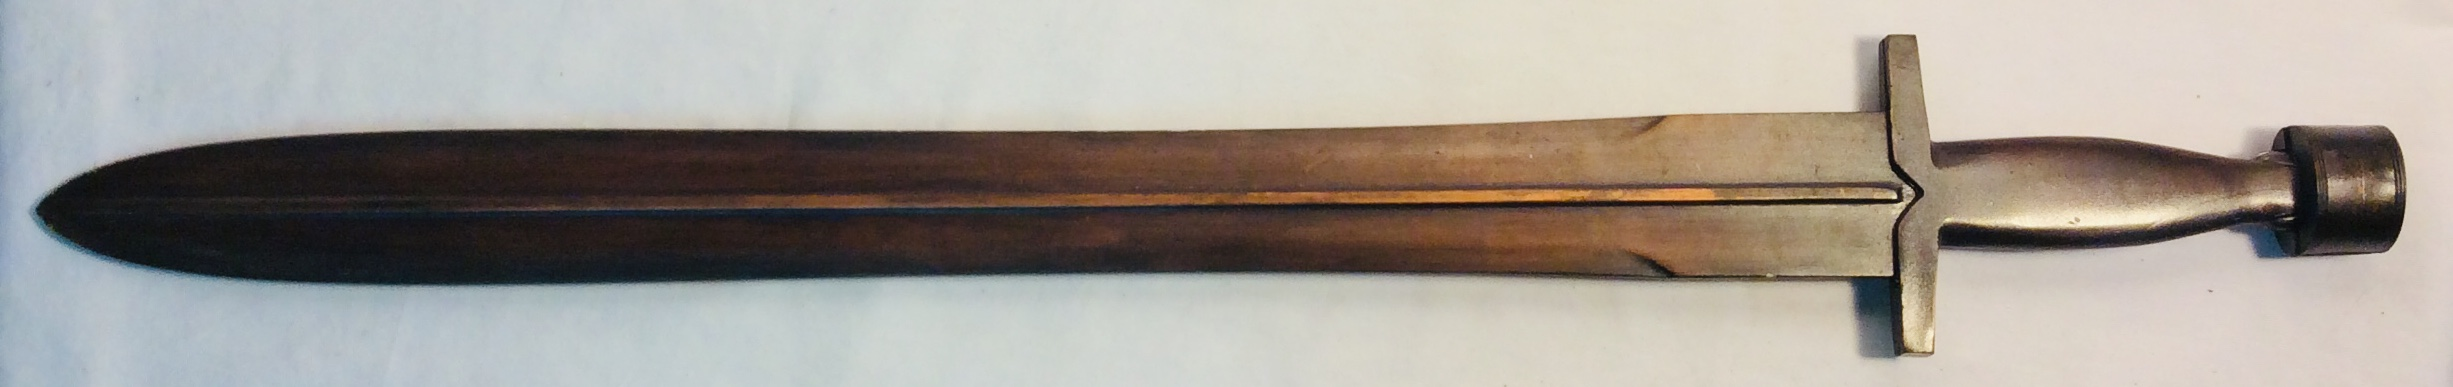 Medieval faux copper sword 2ft blade x2 rubber